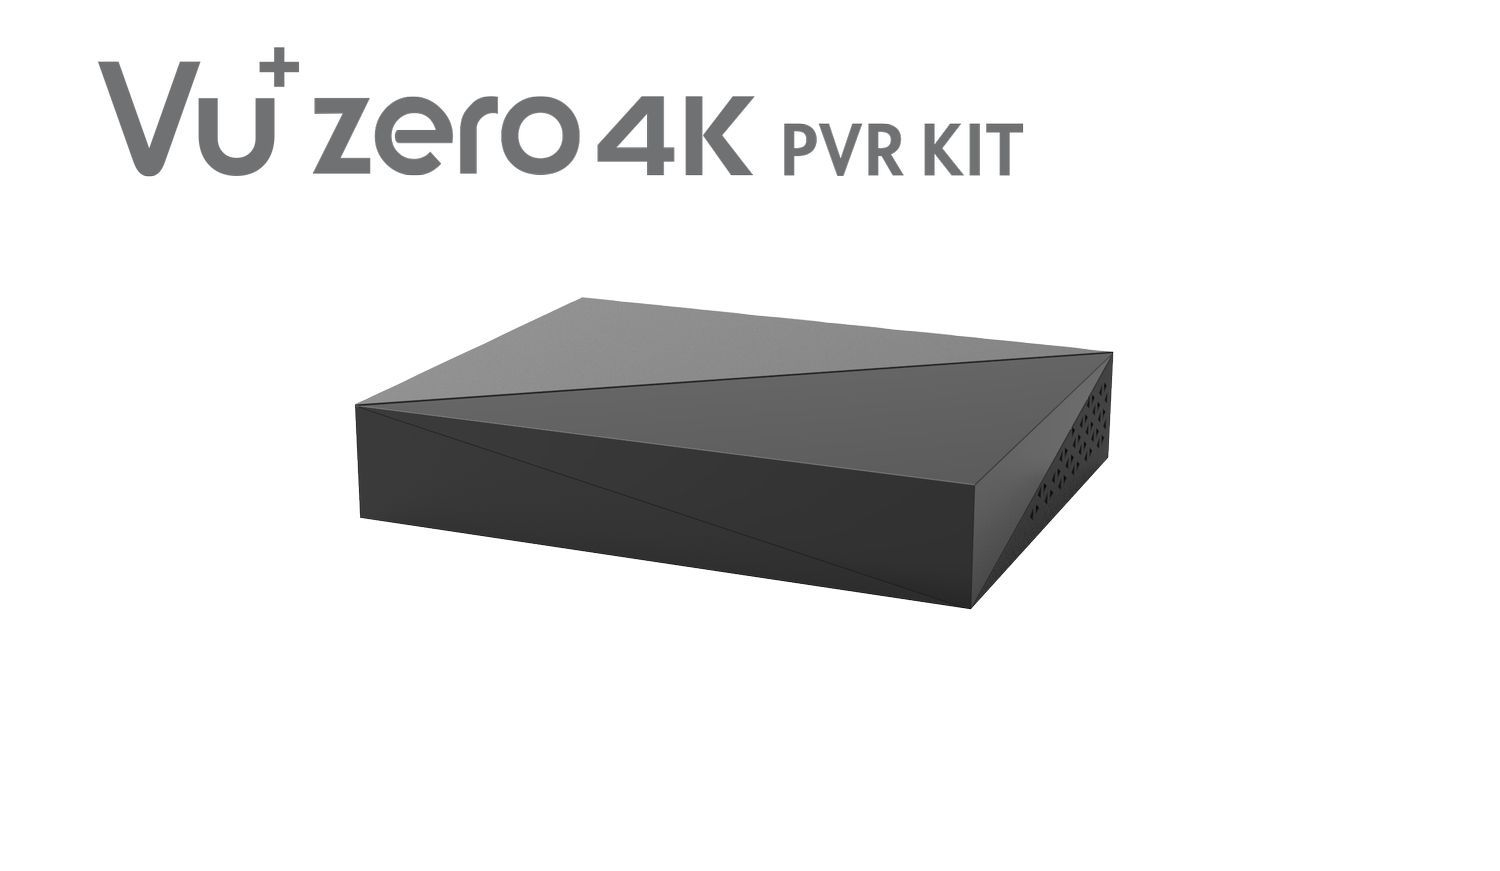 VU+Zero 4K PVR Kit incl. 4TB HDD